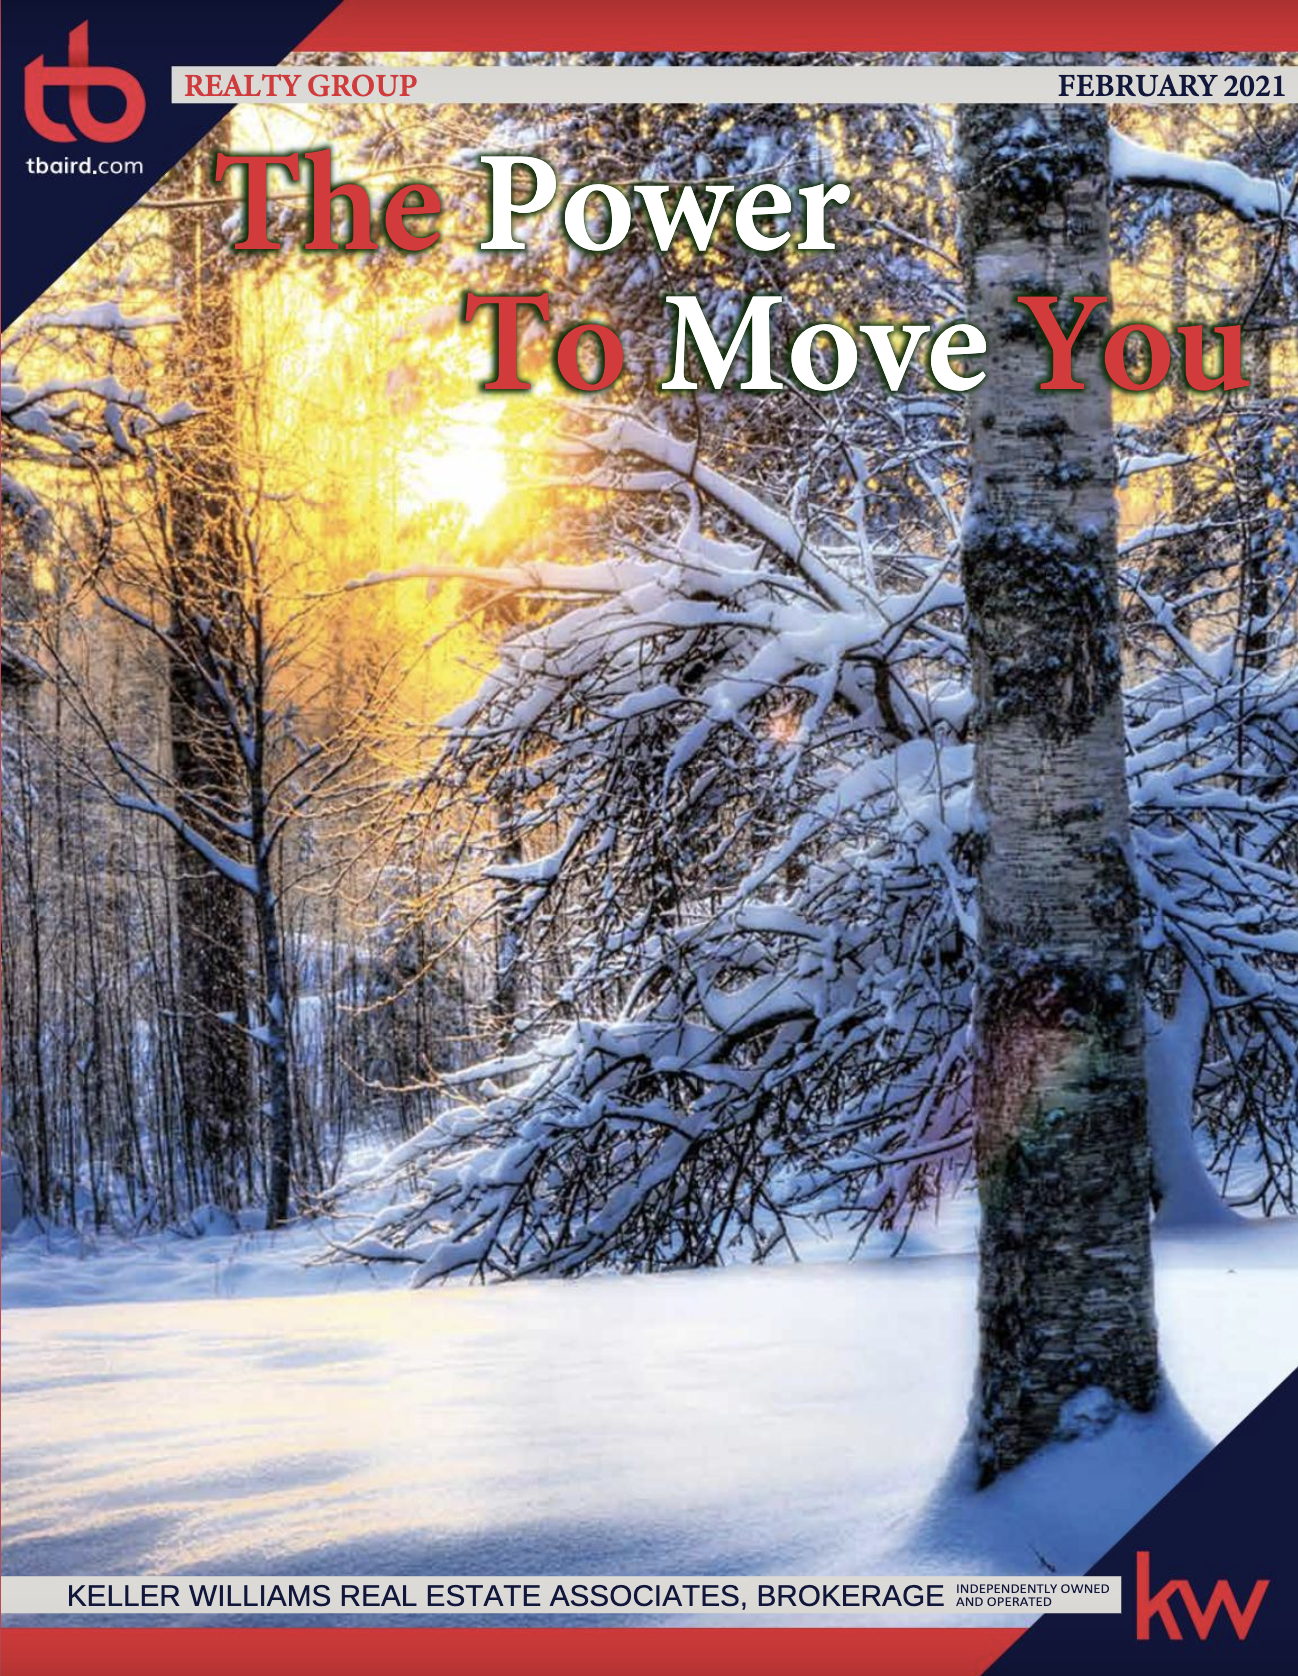 THE POWER TO MOVE YOU MAGAZINE - FEBRUARY ISSUE